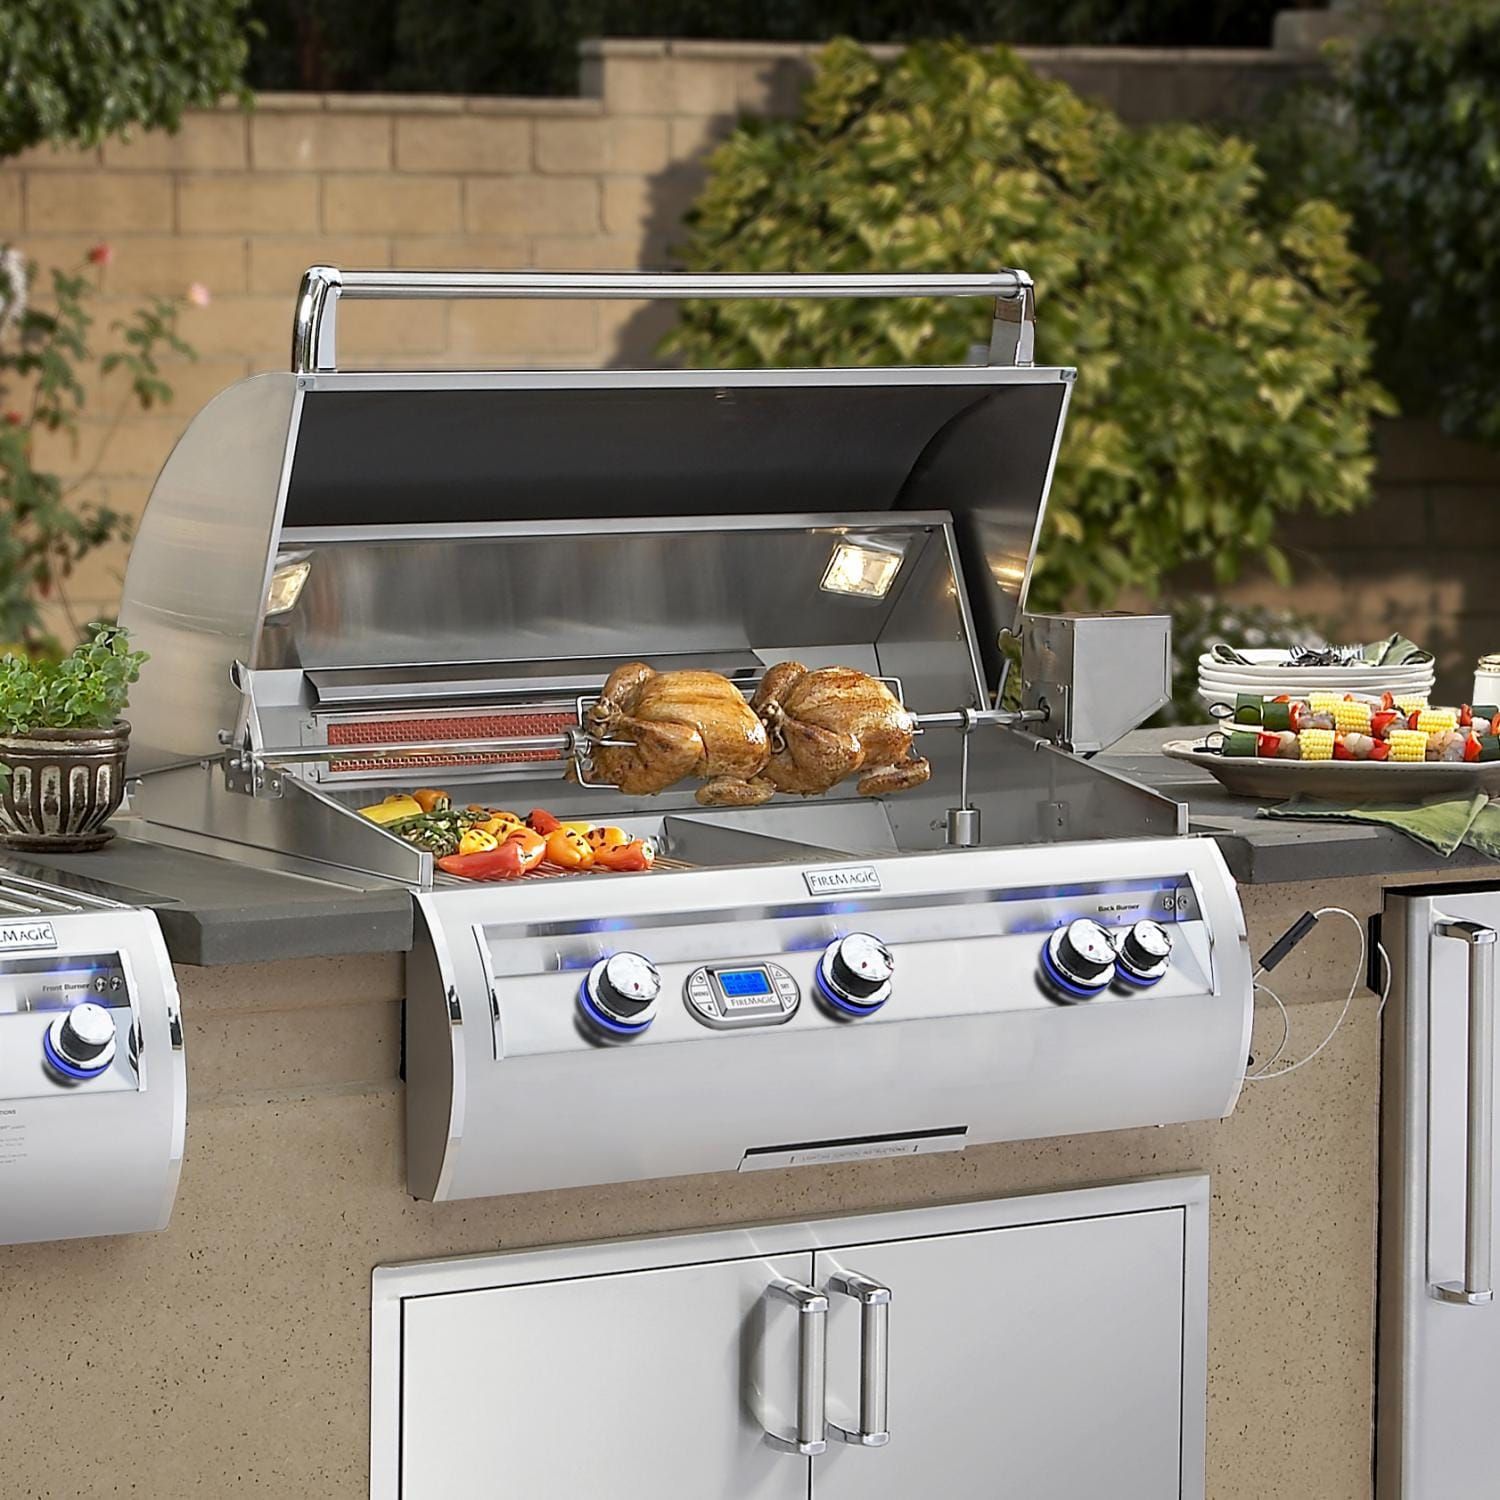 drop in grills for outdoor kitchens home depot kitchen countertops appliances kits bbq guys built